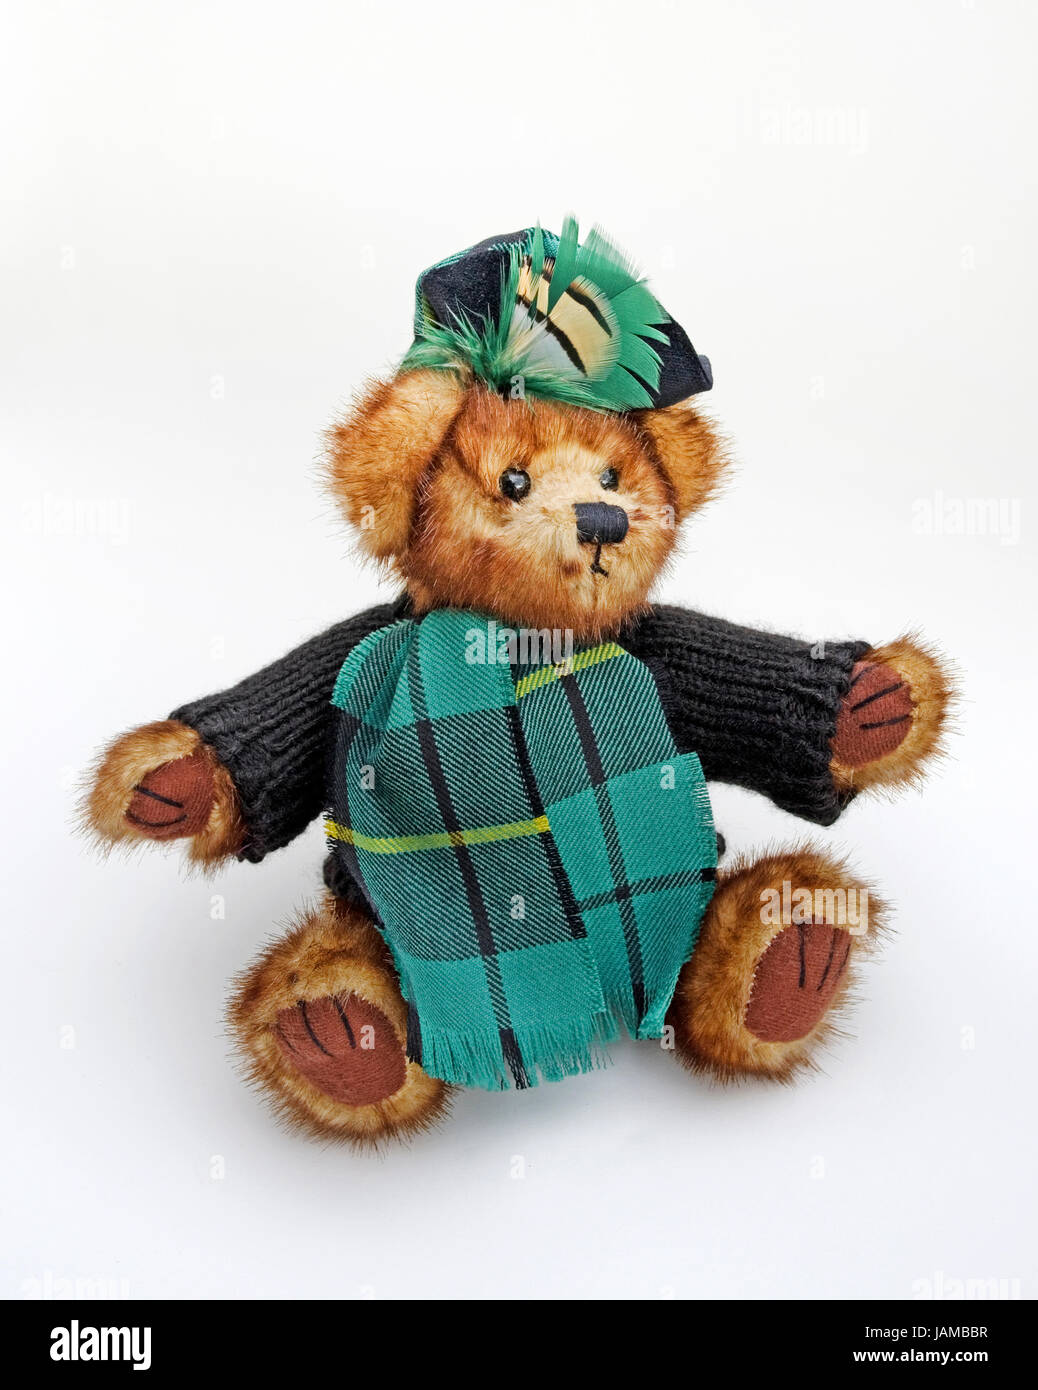 Cute cuddly Scottish teddy bear wearing woolly jumper, tartan scarf, and beret with tartan feather plume. - Stock Image